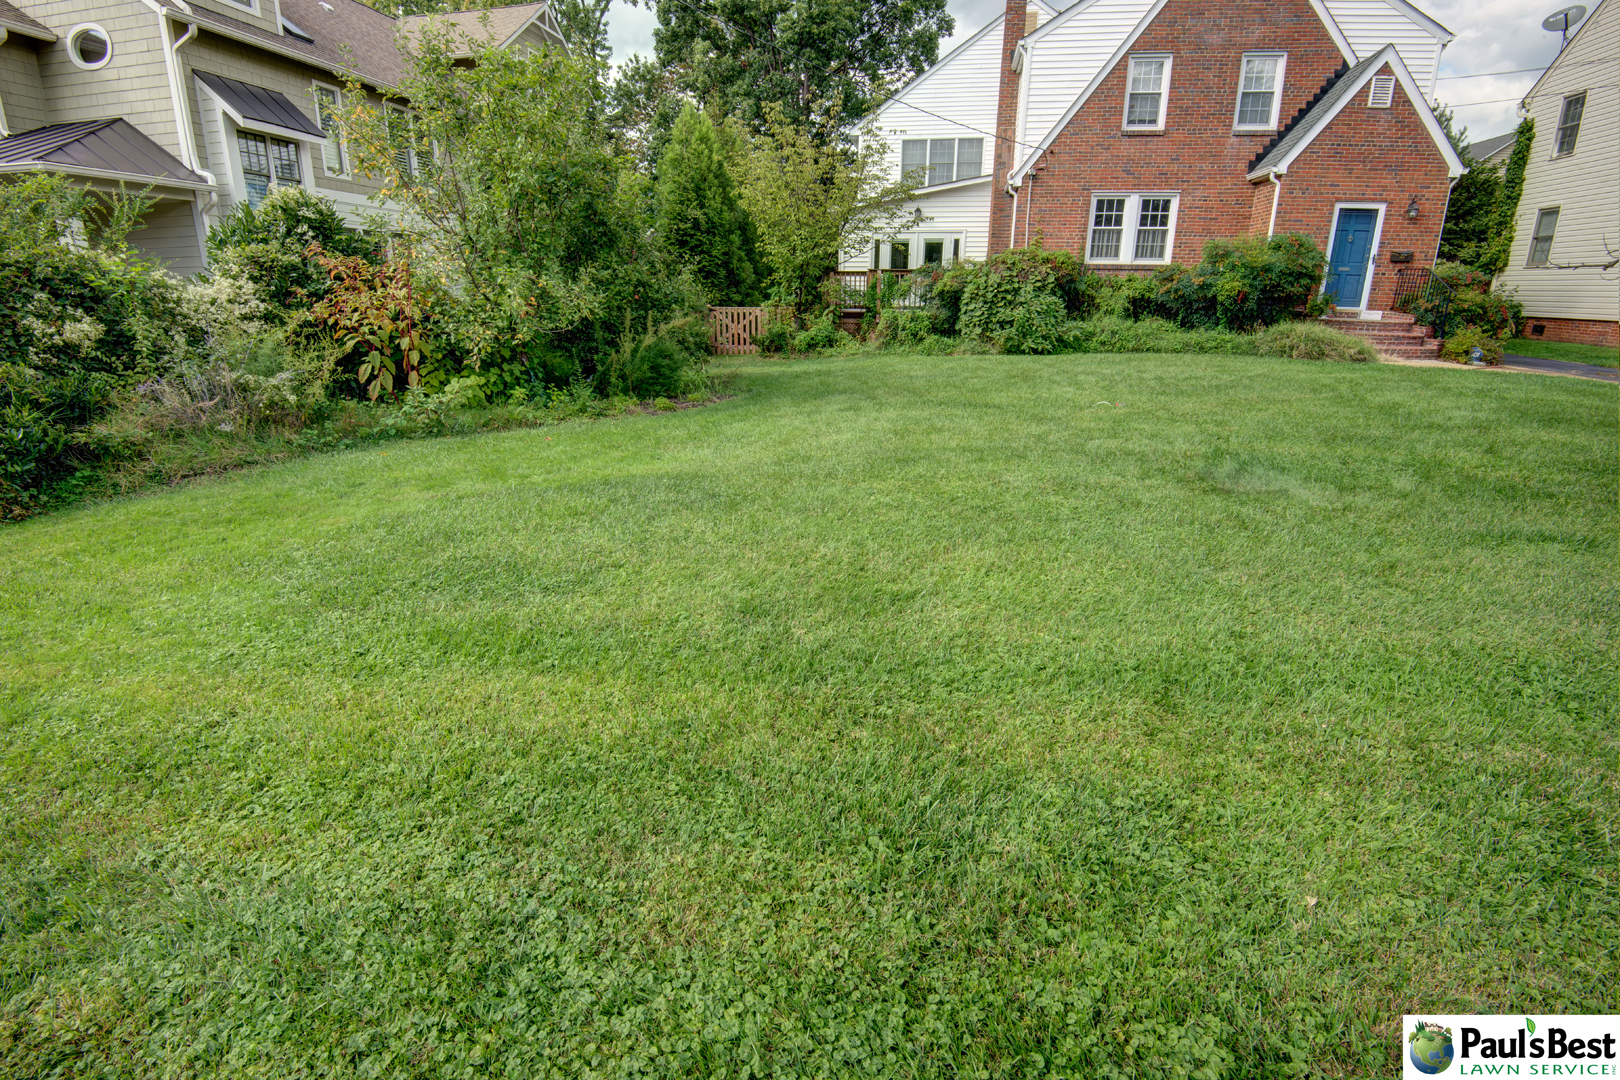 https://paulsbestlawn.com/pbls-img/portfolio/routine-property-maintenance/before-and-after/web-ready/large/BAPM1-r-After-General-Cleanup-Edge-Beds-and-Mulching-in-Arlington-VA.jpg